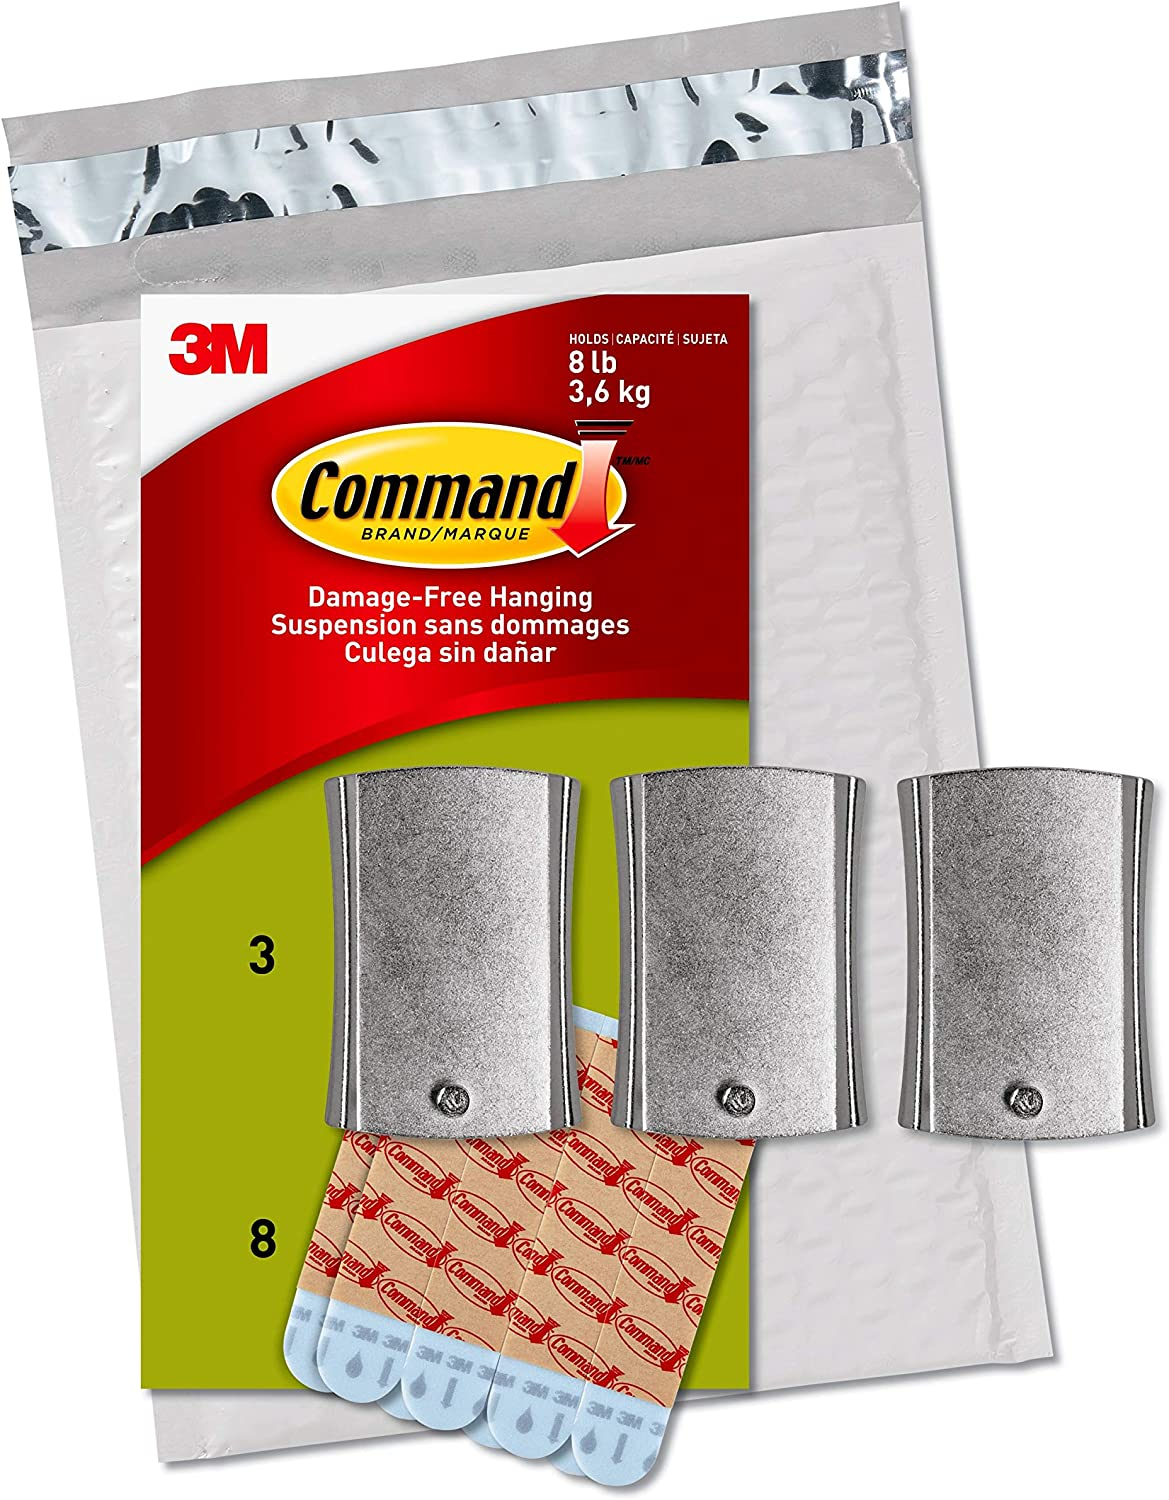 Command Universal Frame Hanger, Holds 8 lbs, White, Decorate Damage-Free, Easy to Open Packaging (PH048-3NA)